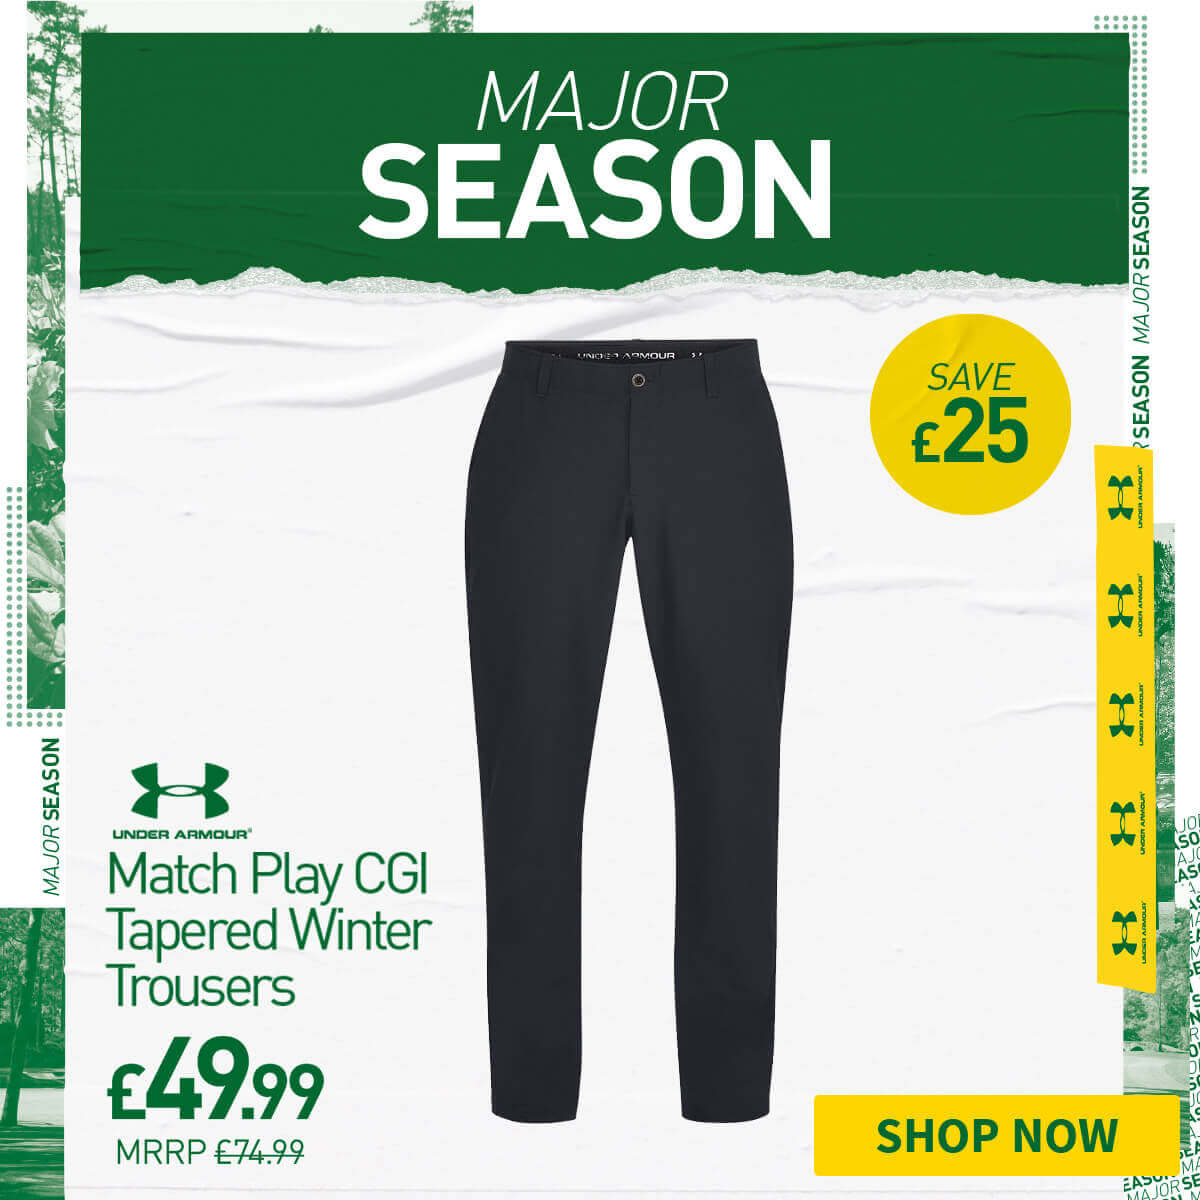 UNDER ARMOUR MATCH PLAY TAPERED WINTER TROUSERS - SAVE £25